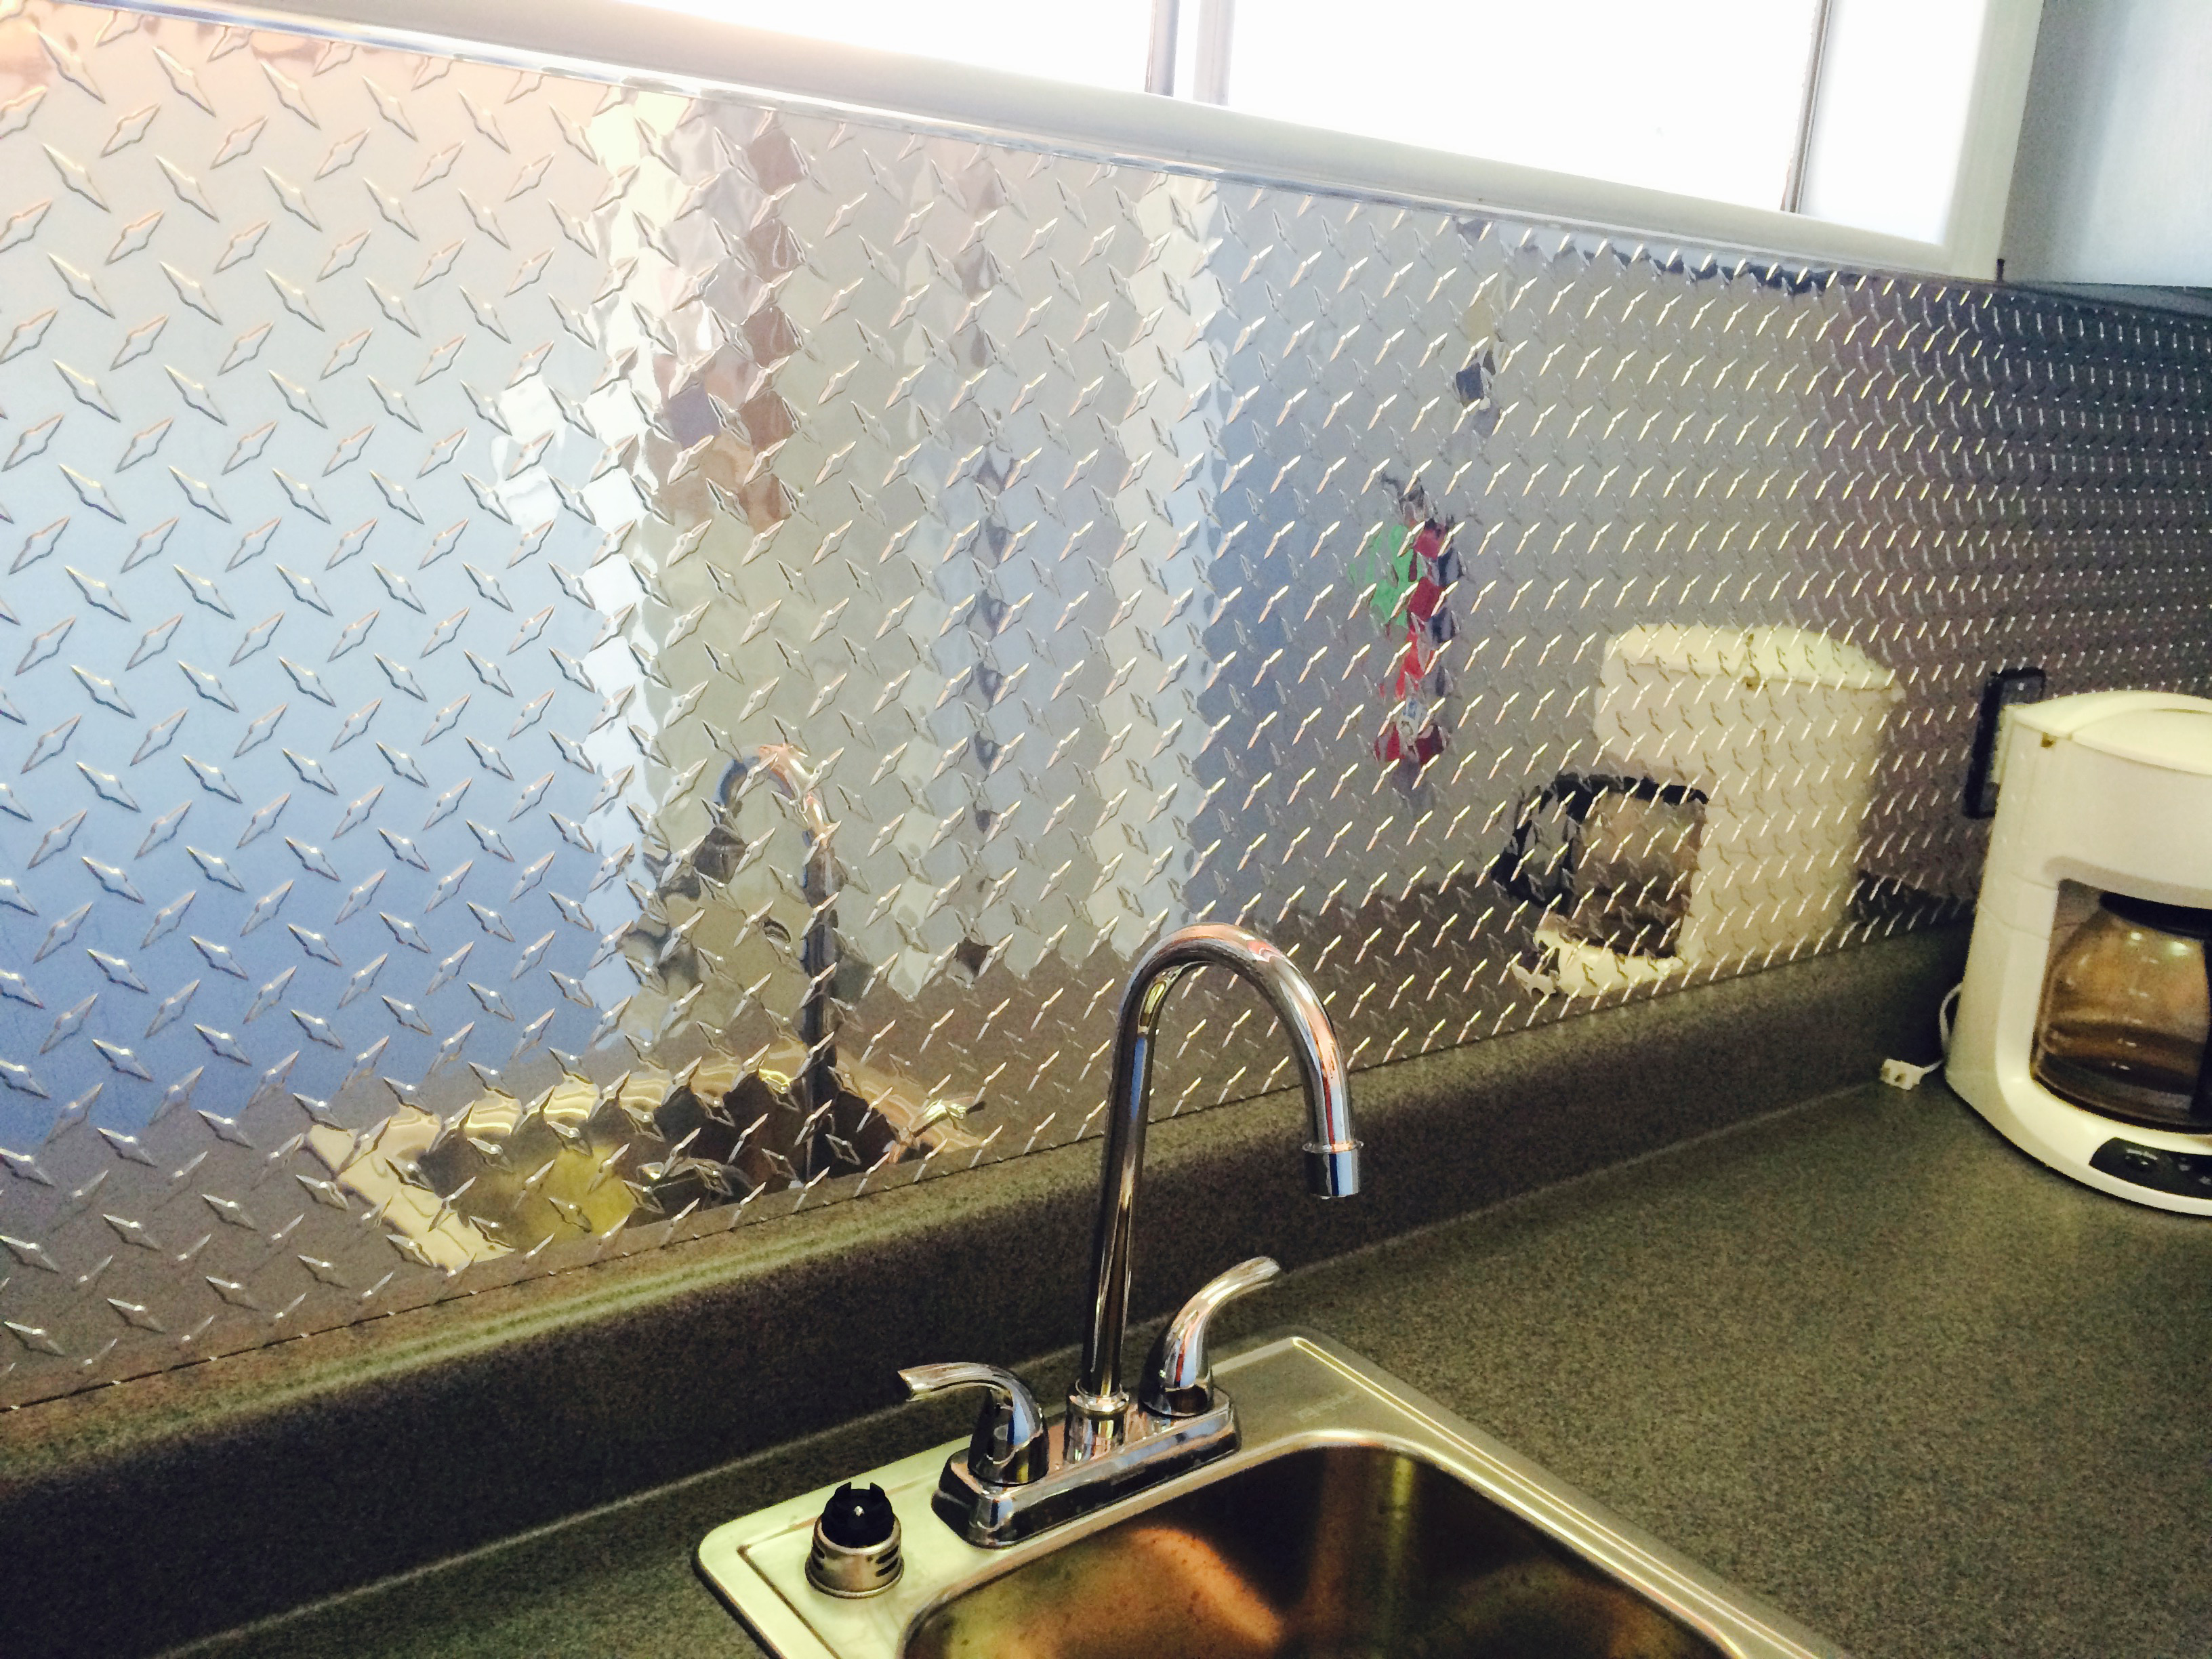 Diamond Plate in the Kitchen! - CutsMetal.net